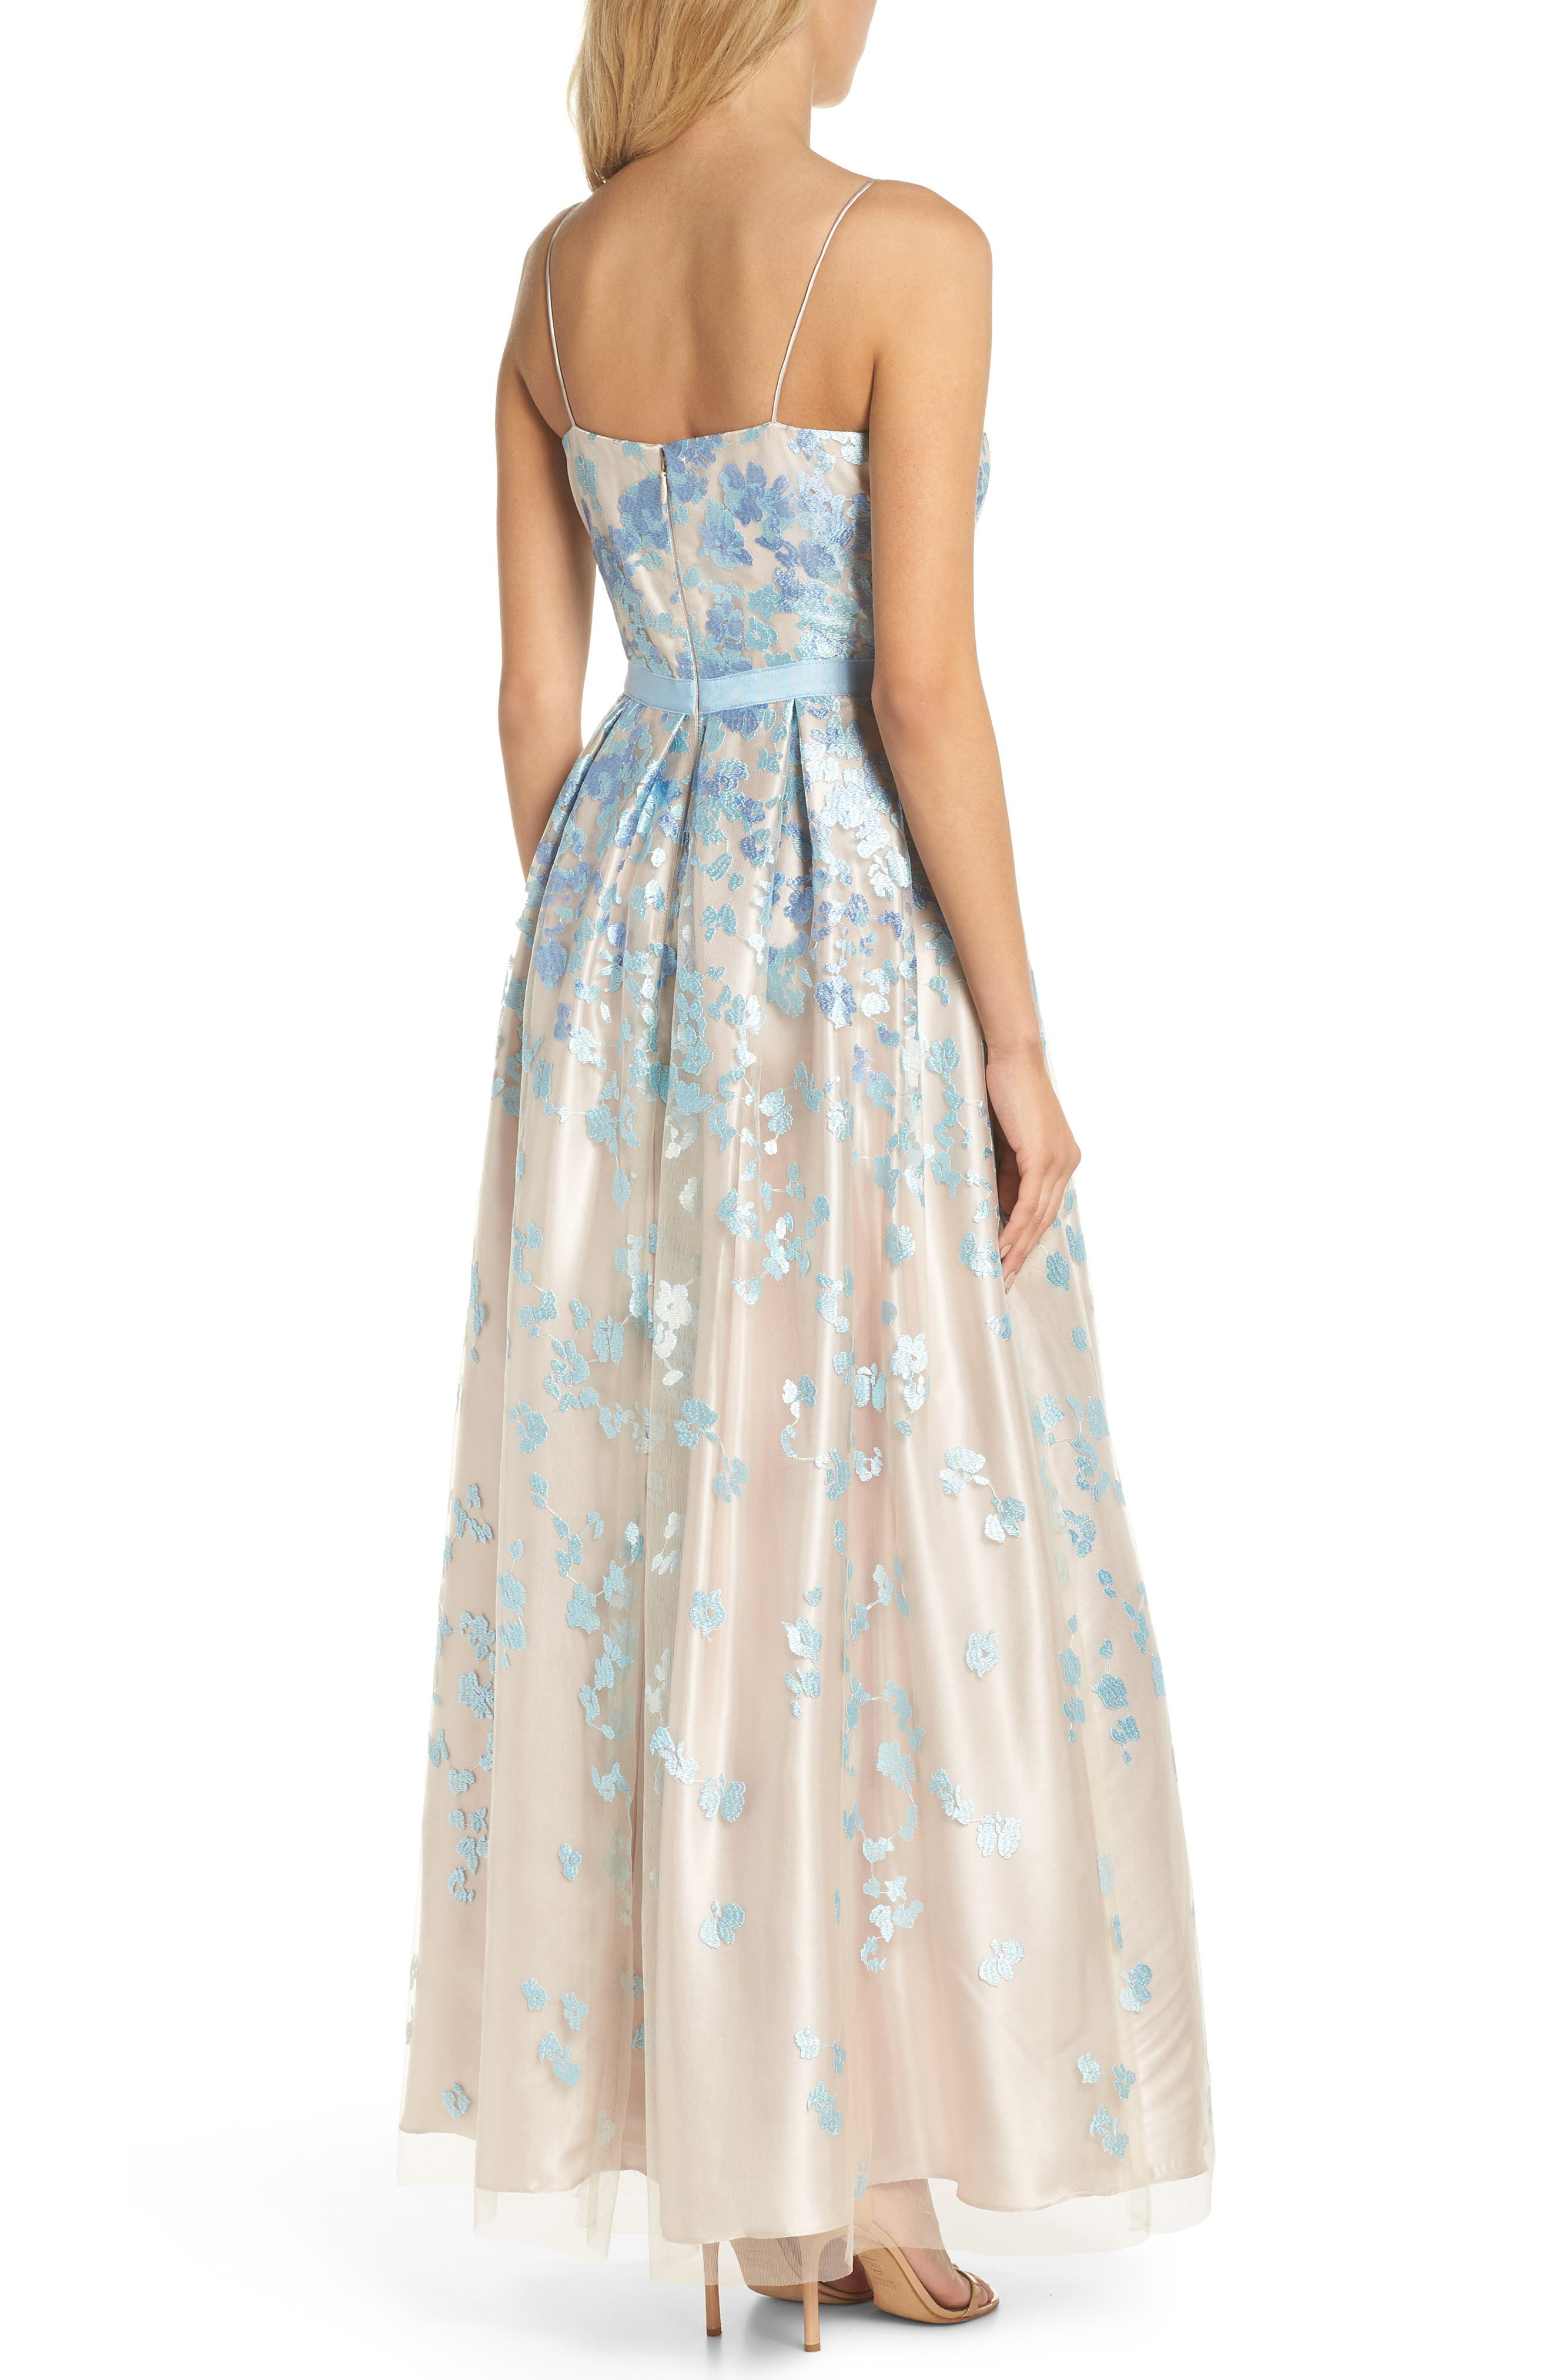 ELIZA J,                             Floral Embroidered Box Pleat Ballgown,                             Alternate thumbnail 2, color,                             450